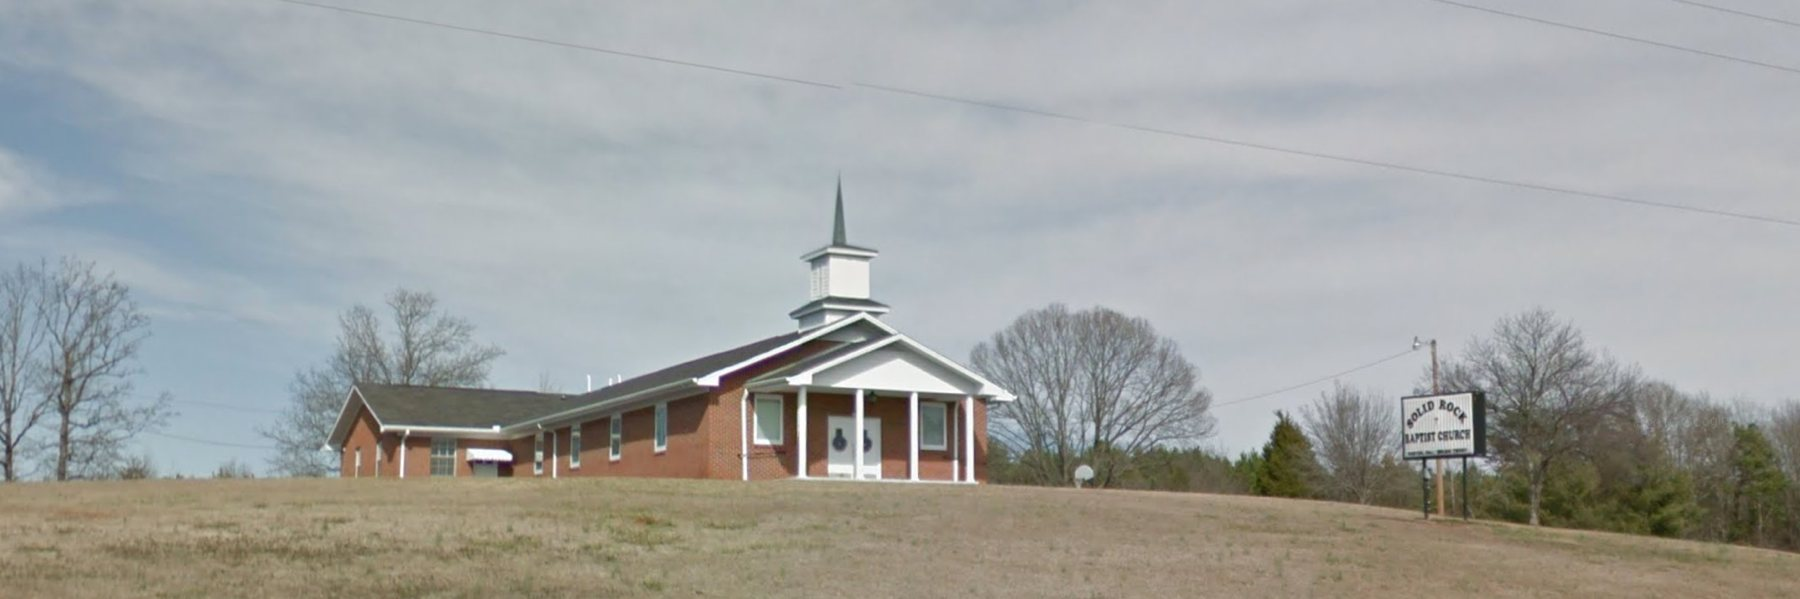 solid-rock-independent-baptist-church-liberty-south-carolina